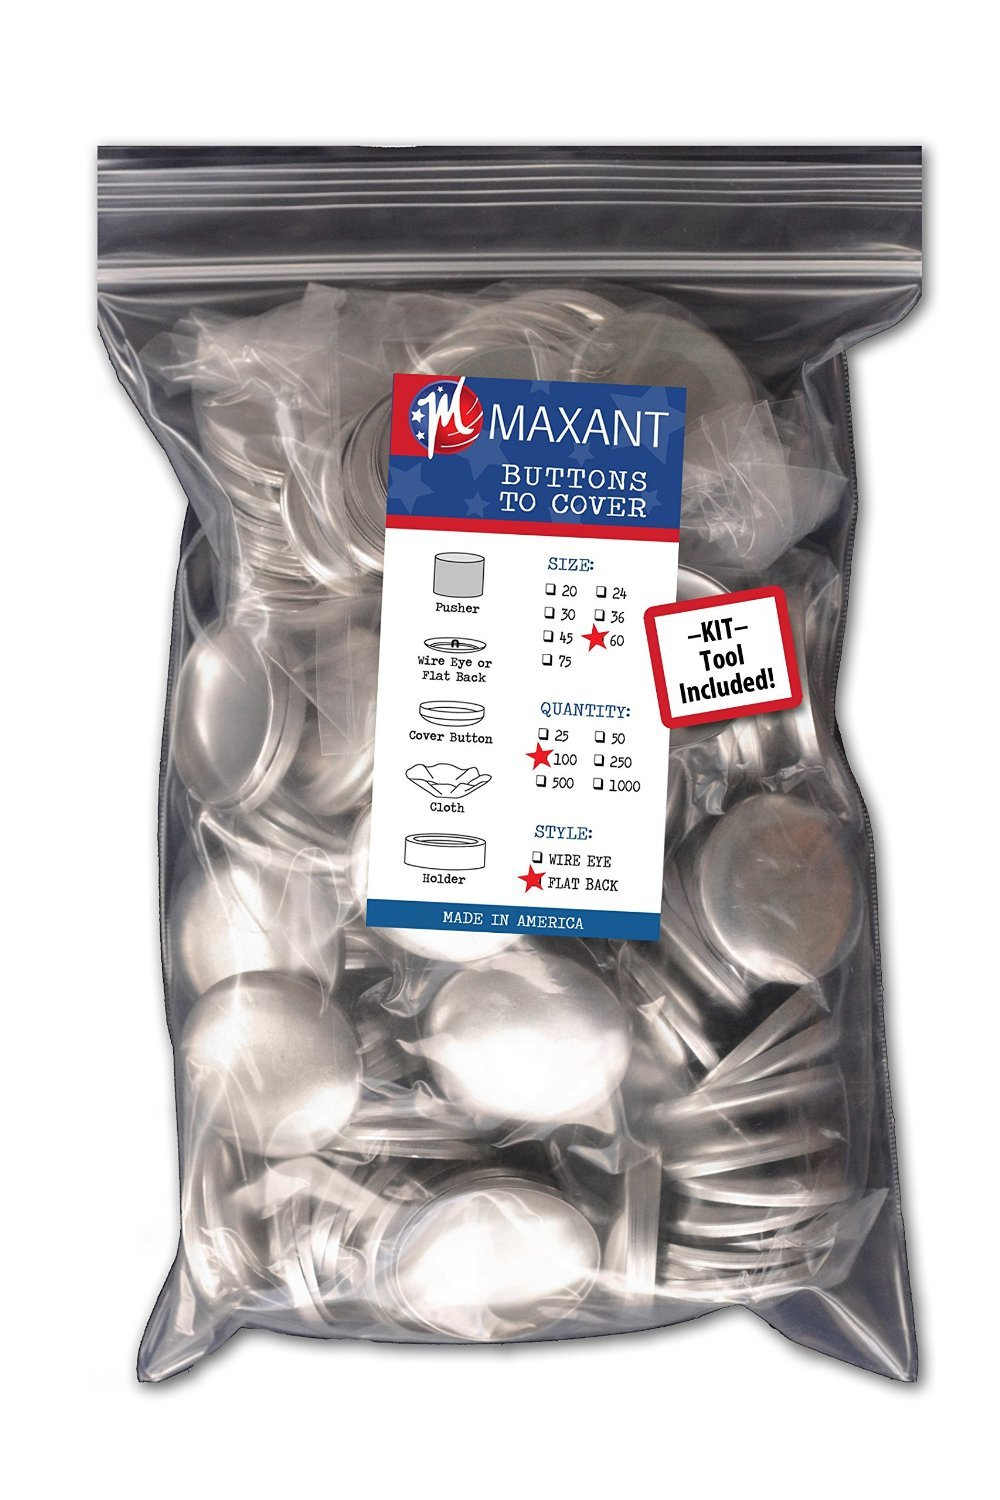 100 Buttons to Cover - Made in USA - Self Cover Buttons with Flat Backs - Size 20 (13mm) with Tool Maxant Buttons